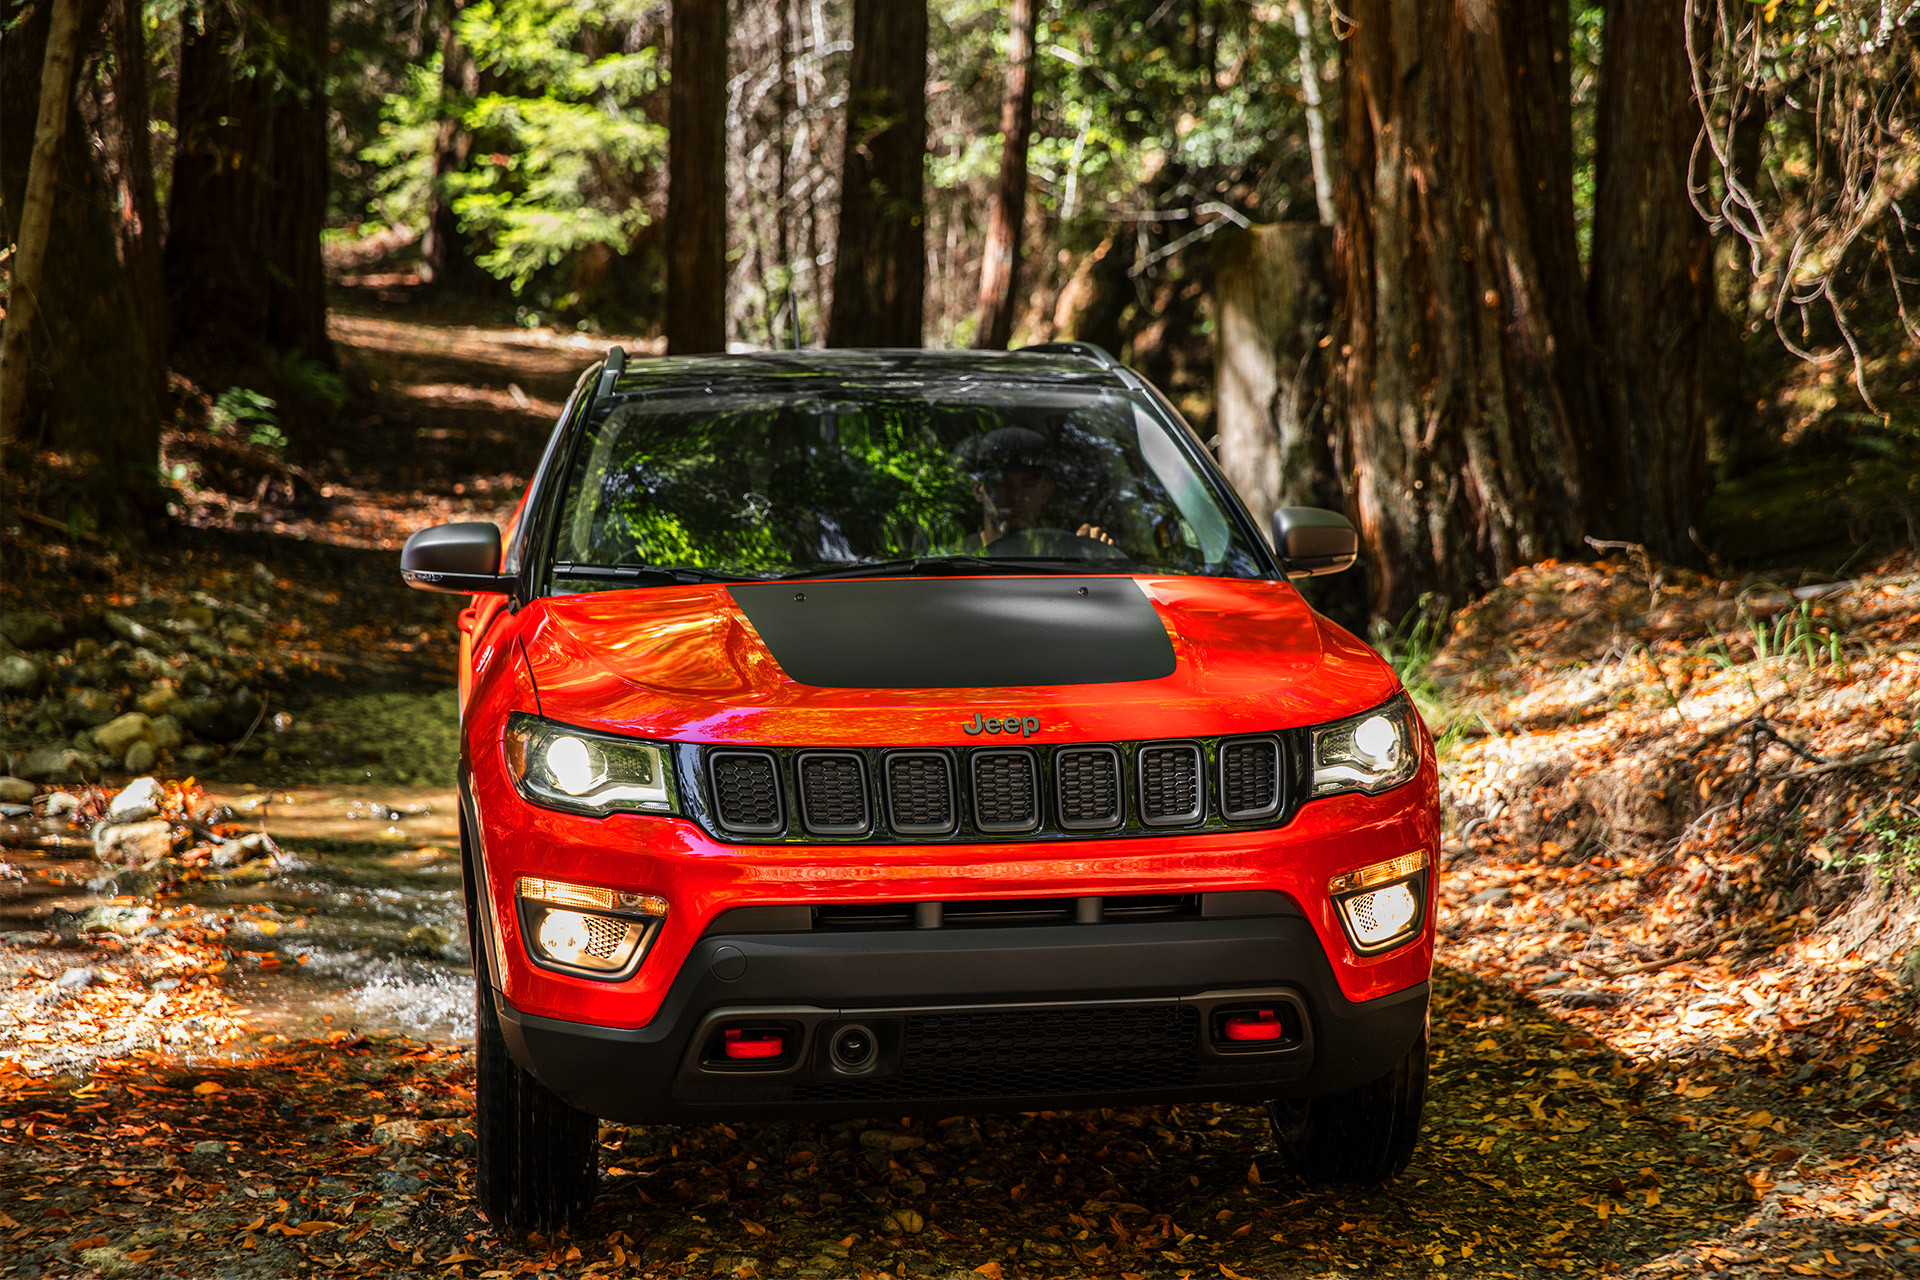 2020 jeep compass exterior gallery | jeep canada